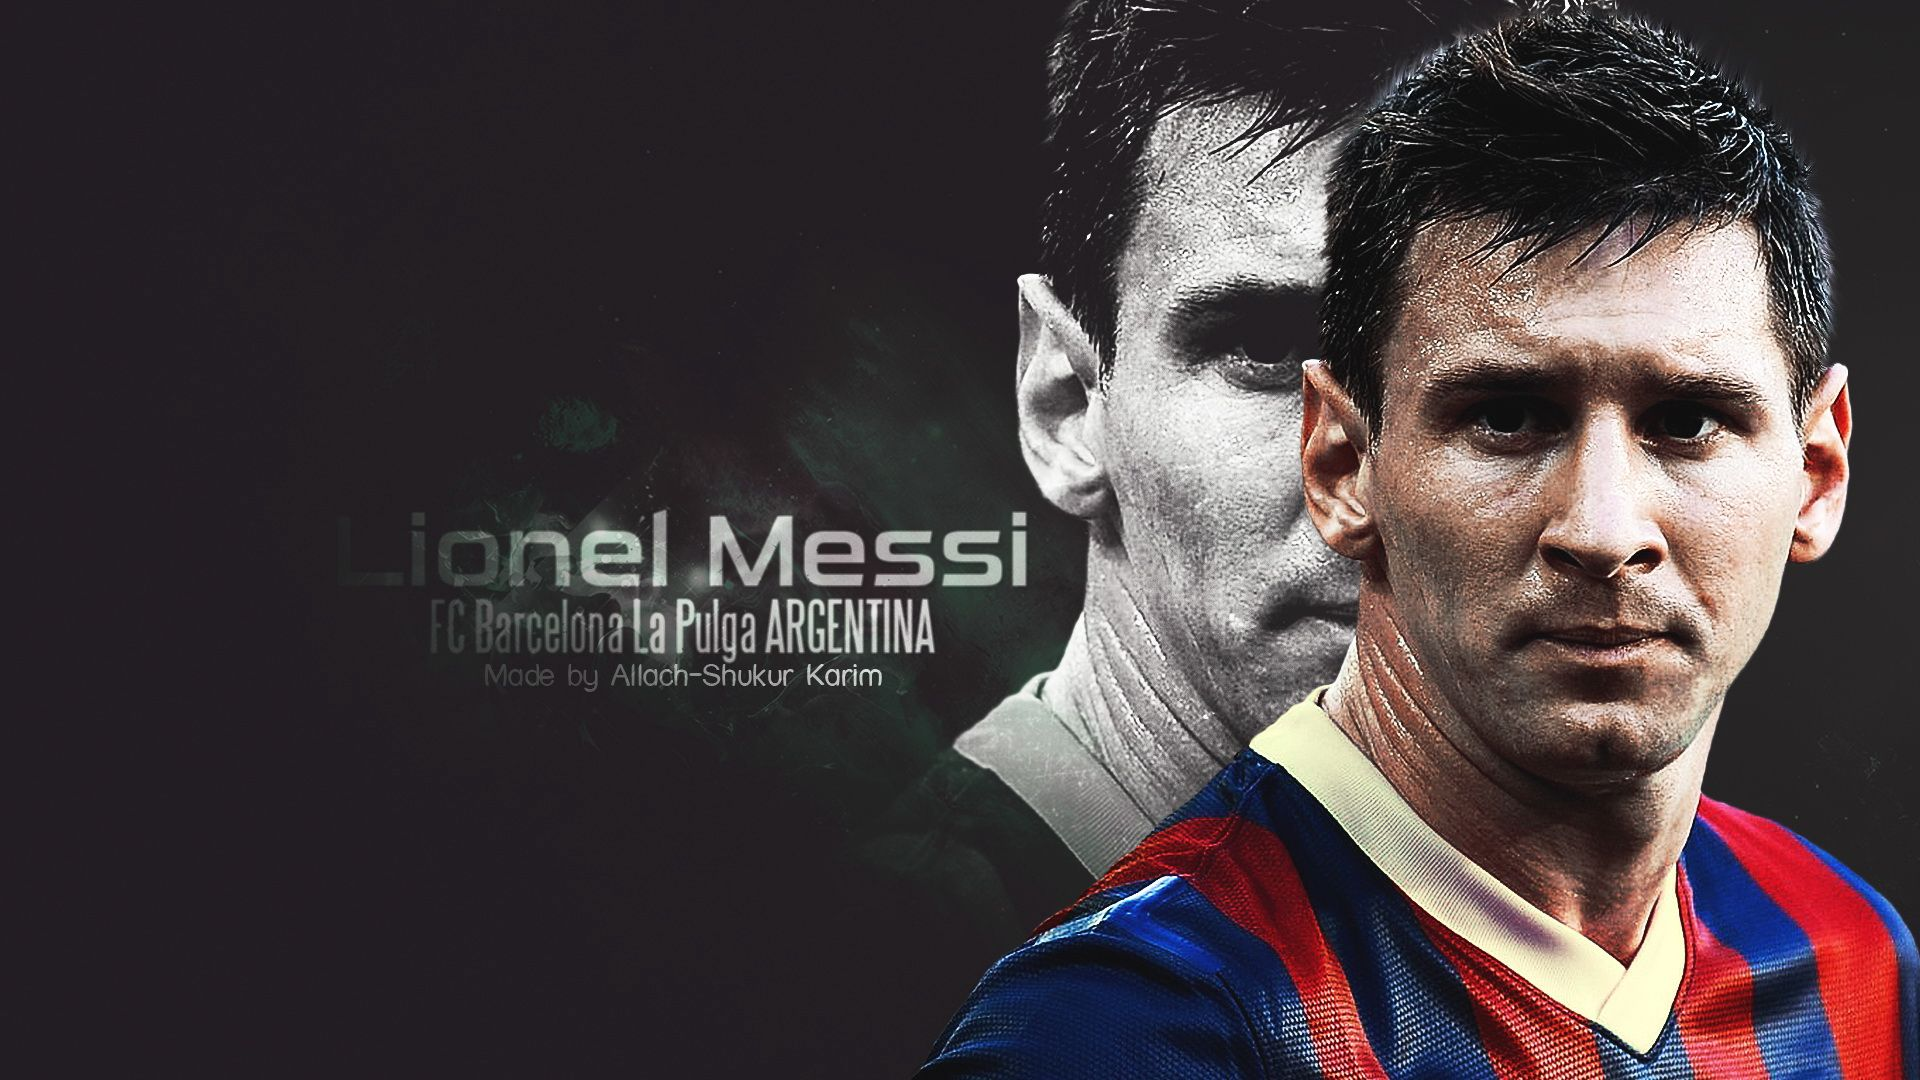 messi wallpapers wallpaper | hd wallpapers | pinterest | messi, hd